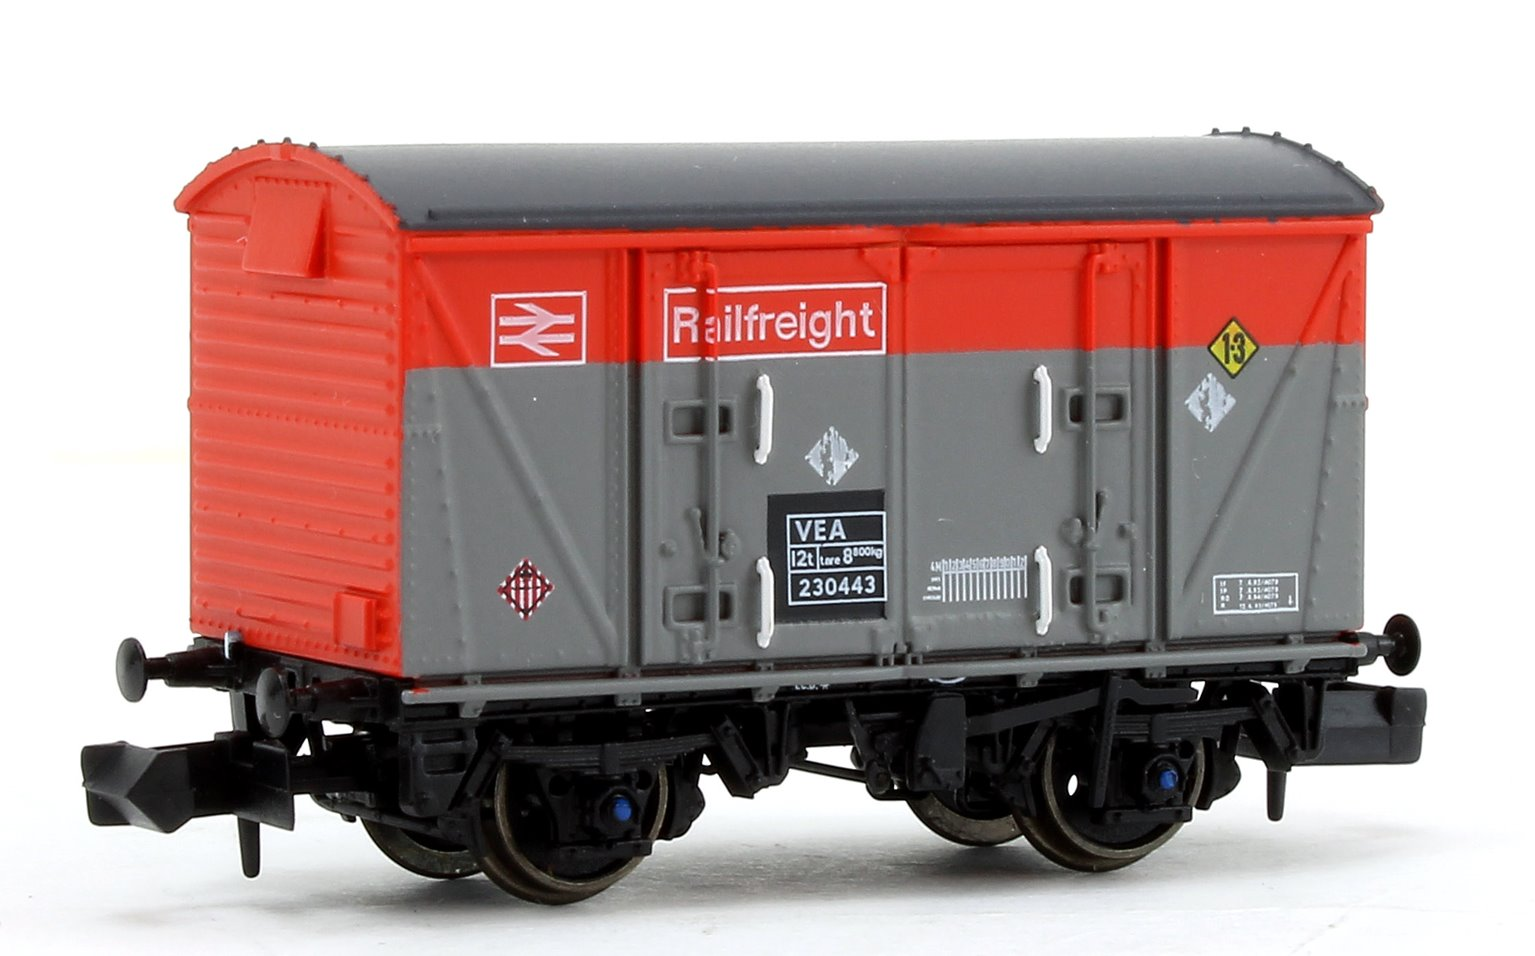 BR Railfreight Red/Grey (Pristine) VEA Munitions Van #230443